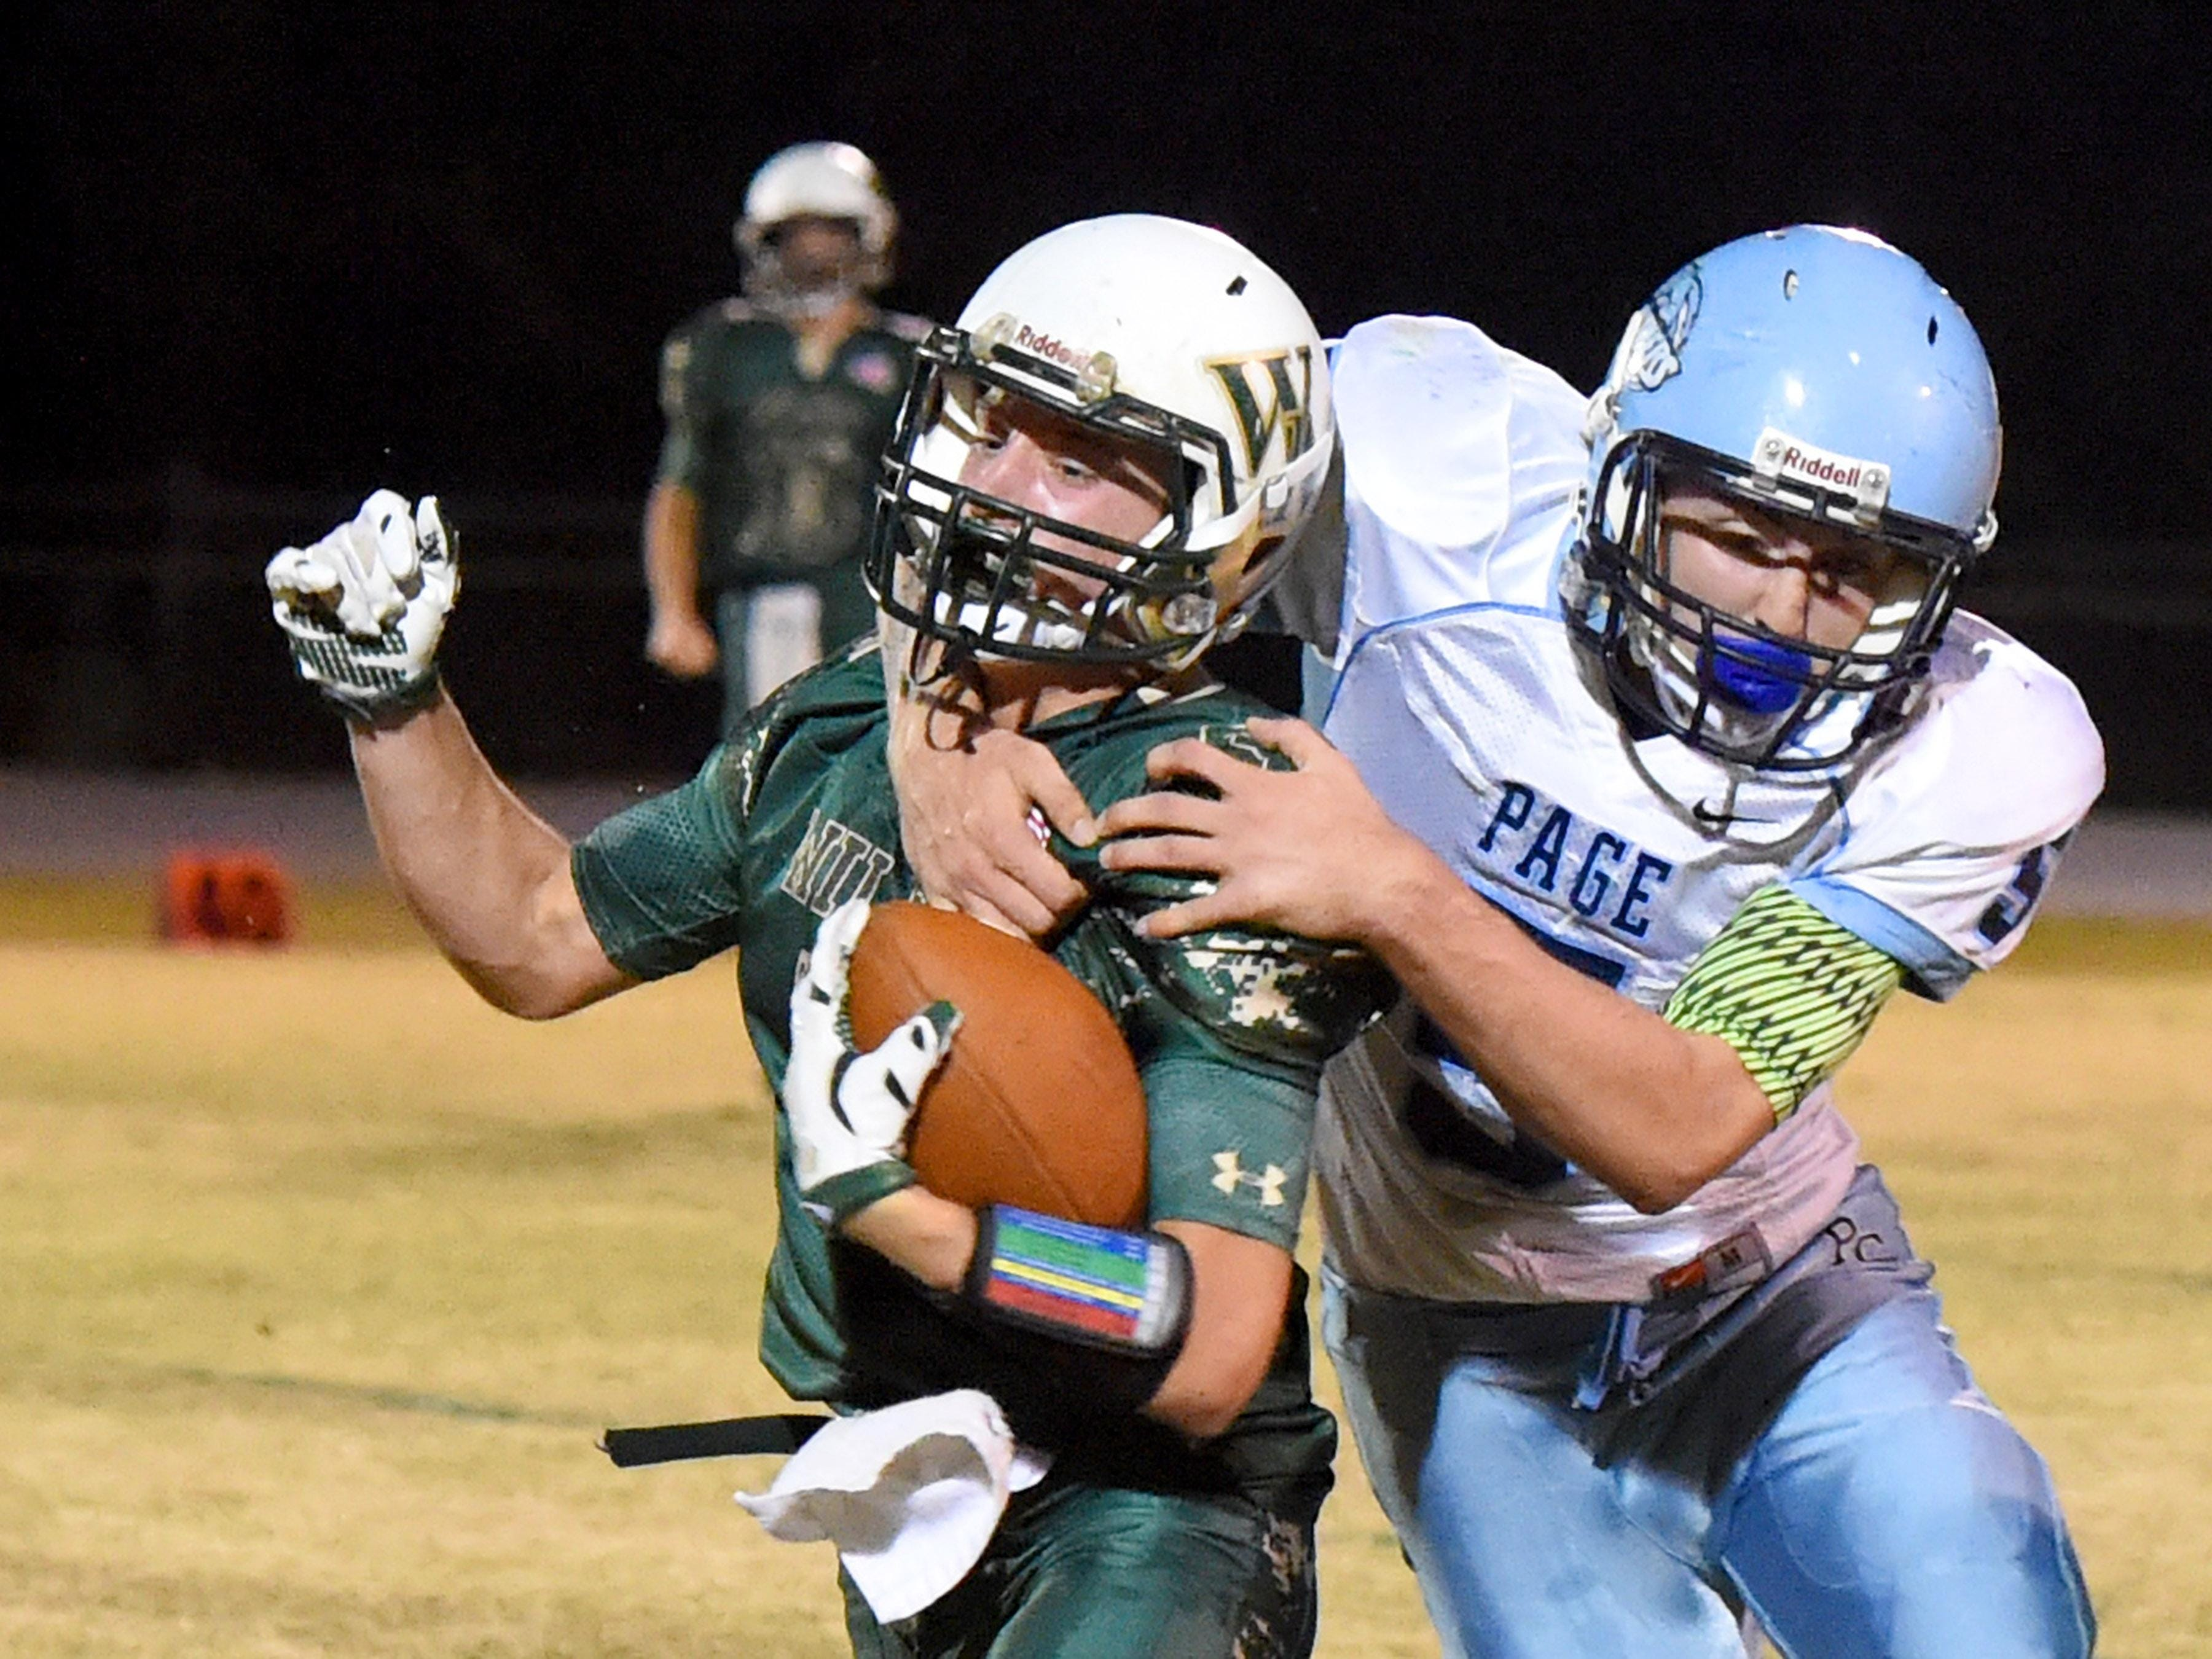 Page County's Bailey Turner grabs Wilson Memorial's Kyle Coombe during a their game in Fishersville on Friday.